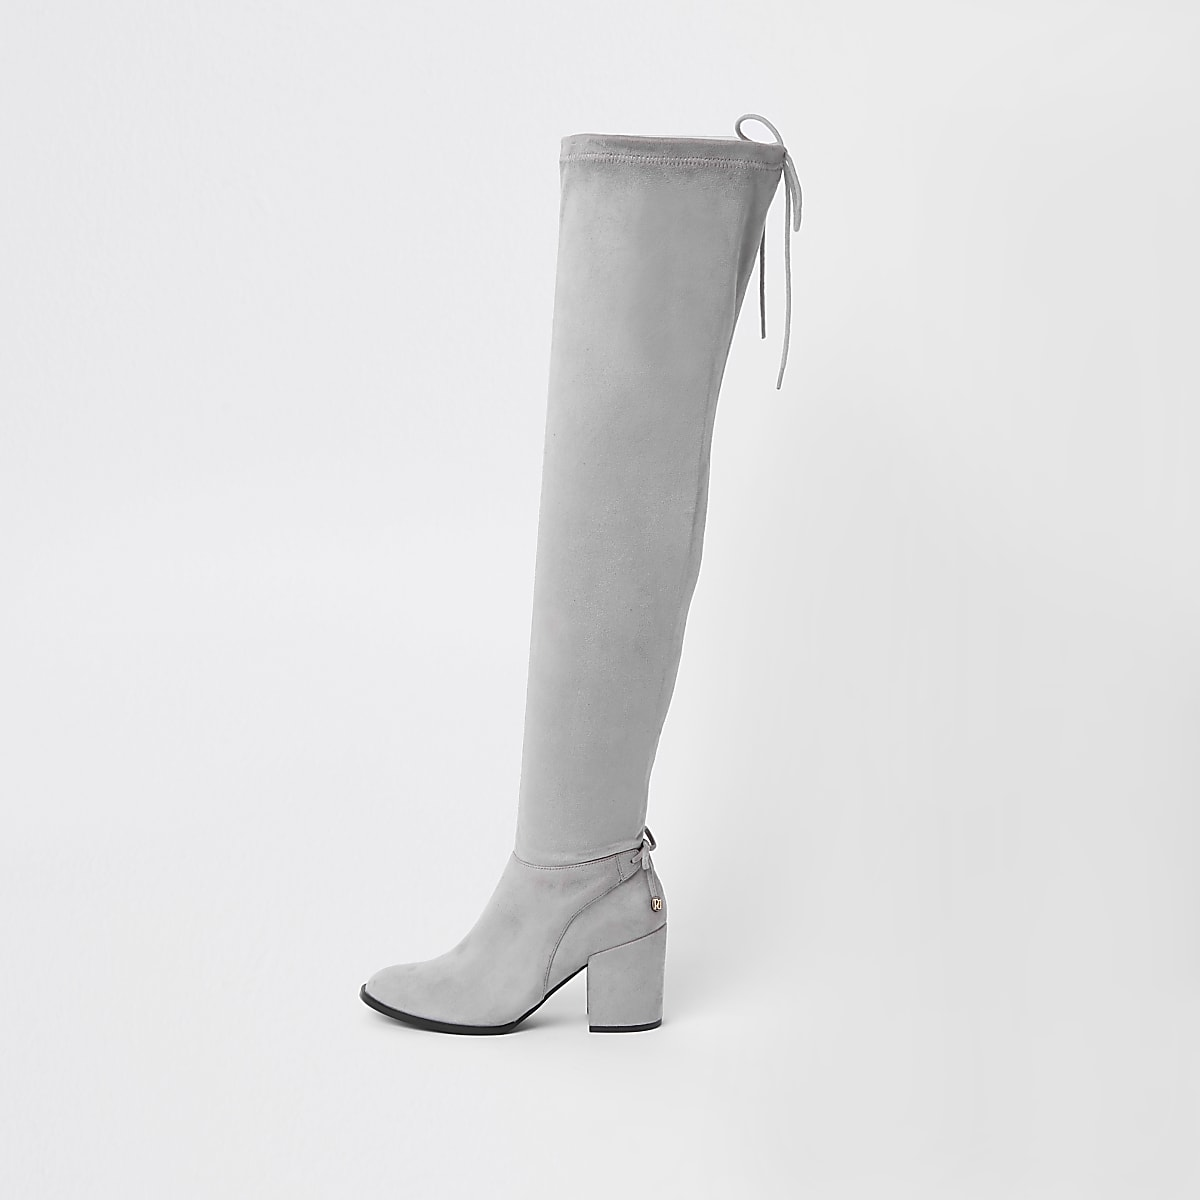 84b16ecb979 Grey faux suede over the knee boots - Boots - Shoes   Boots - women